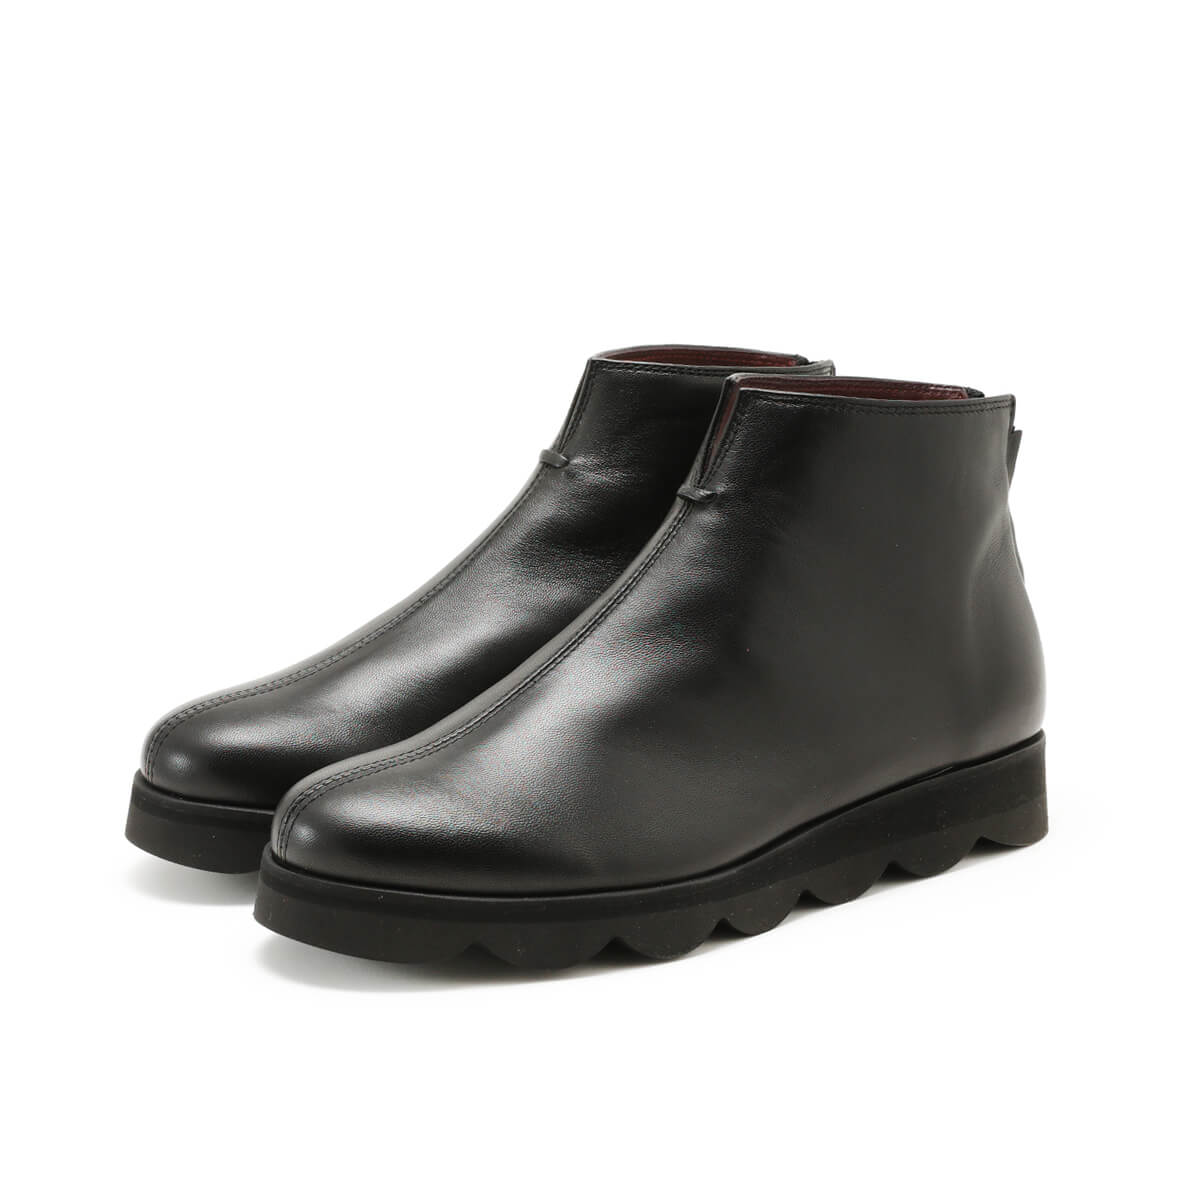 Black back zip ankle boot with light rubber sole